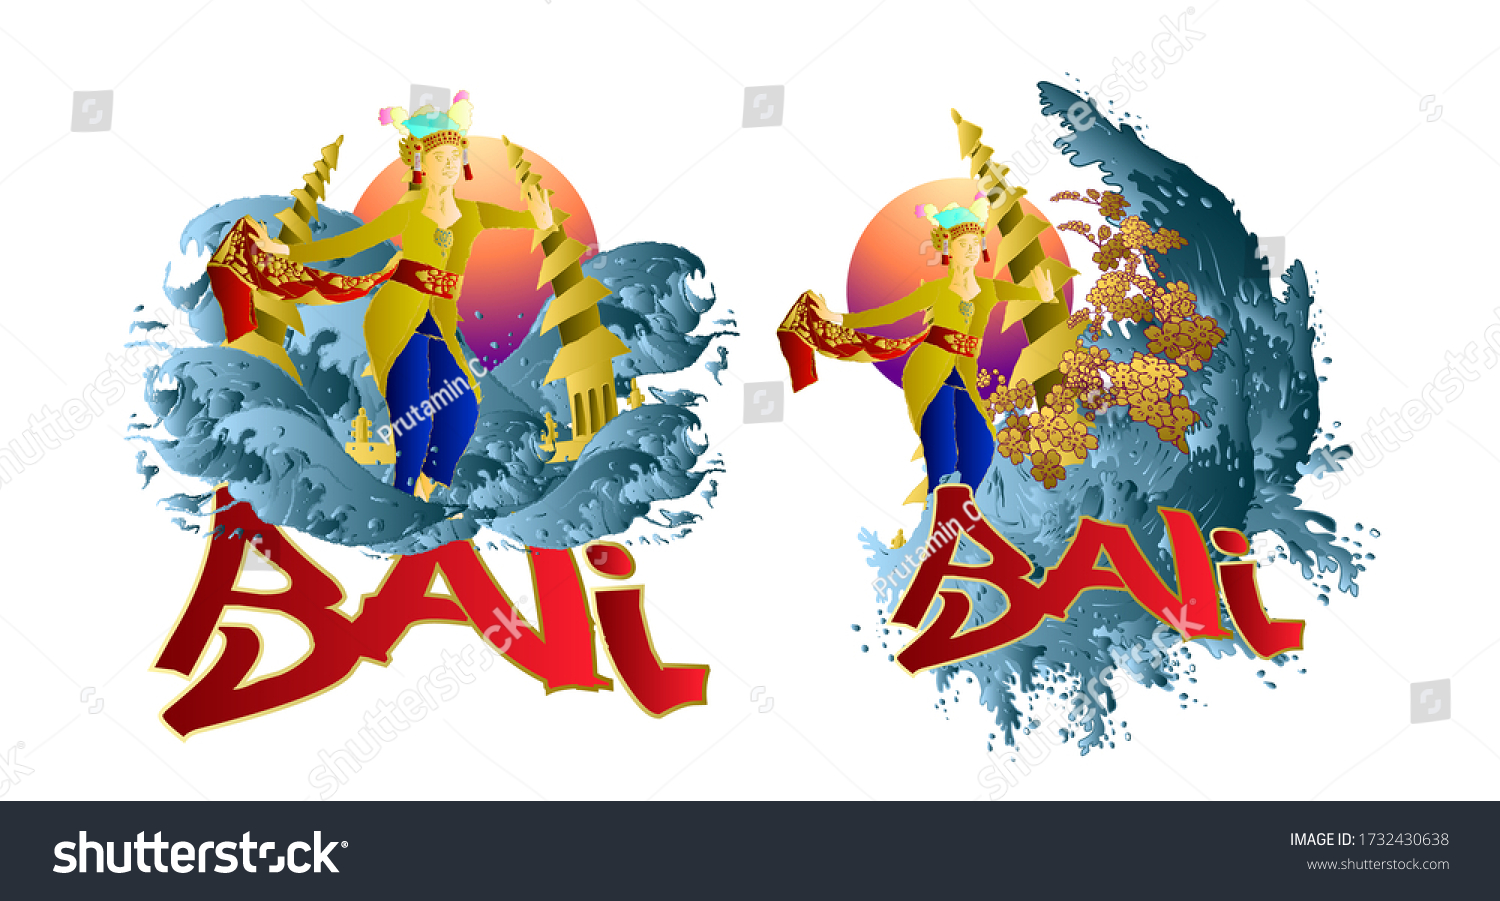 stock-vector-bali-iconic-place-and-bali-